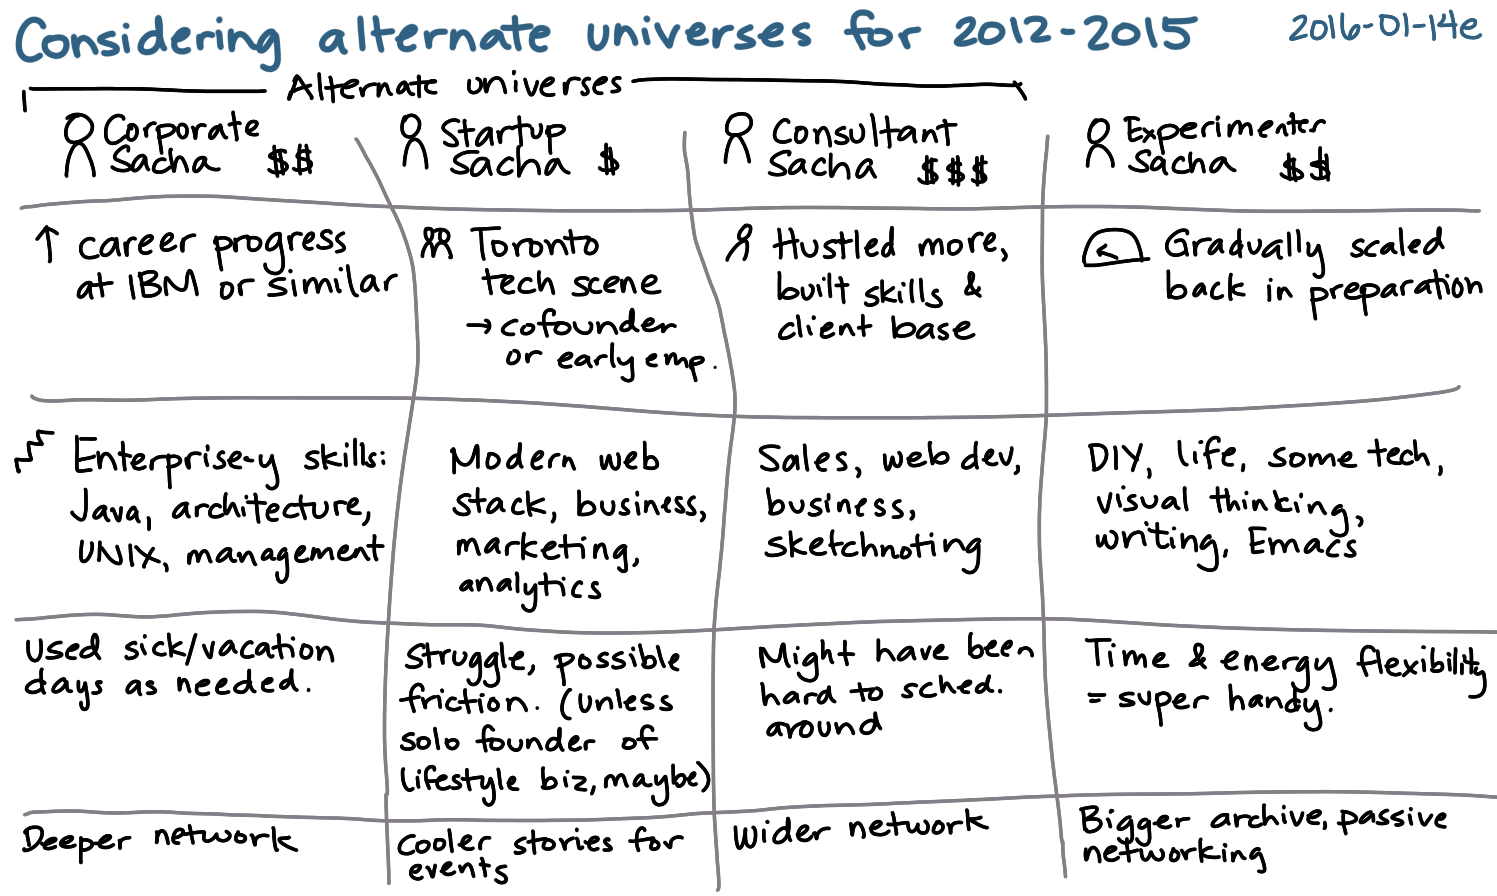 2016-01-14e Considering alternate universes for 2012-2015 -- index card #experiment.png